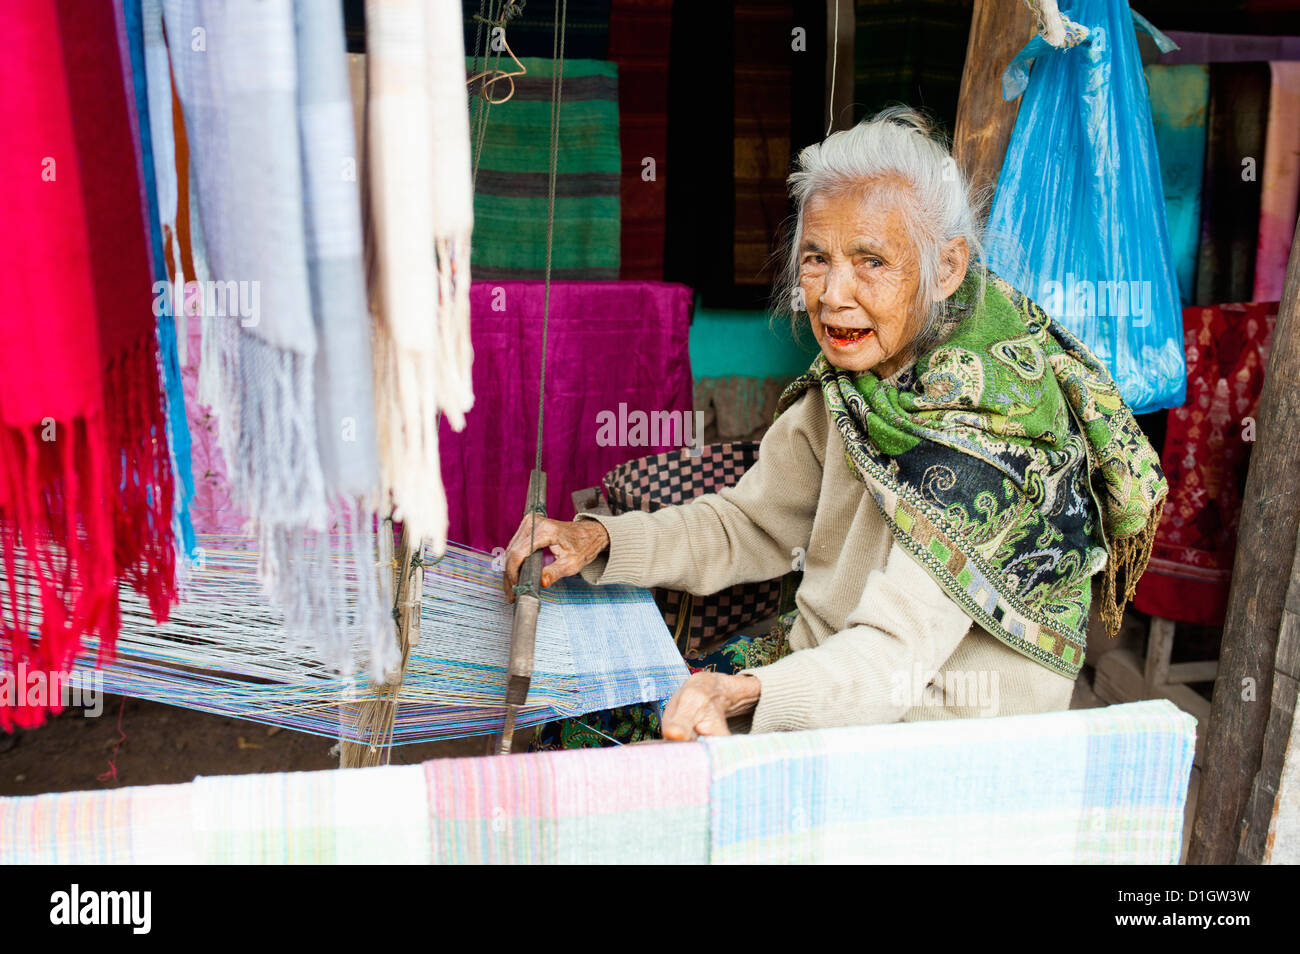 Old woman weaving scarves at her loom, Luang Prabang, Laos, Indochina, Southeast Asia, Asia - Stock Image